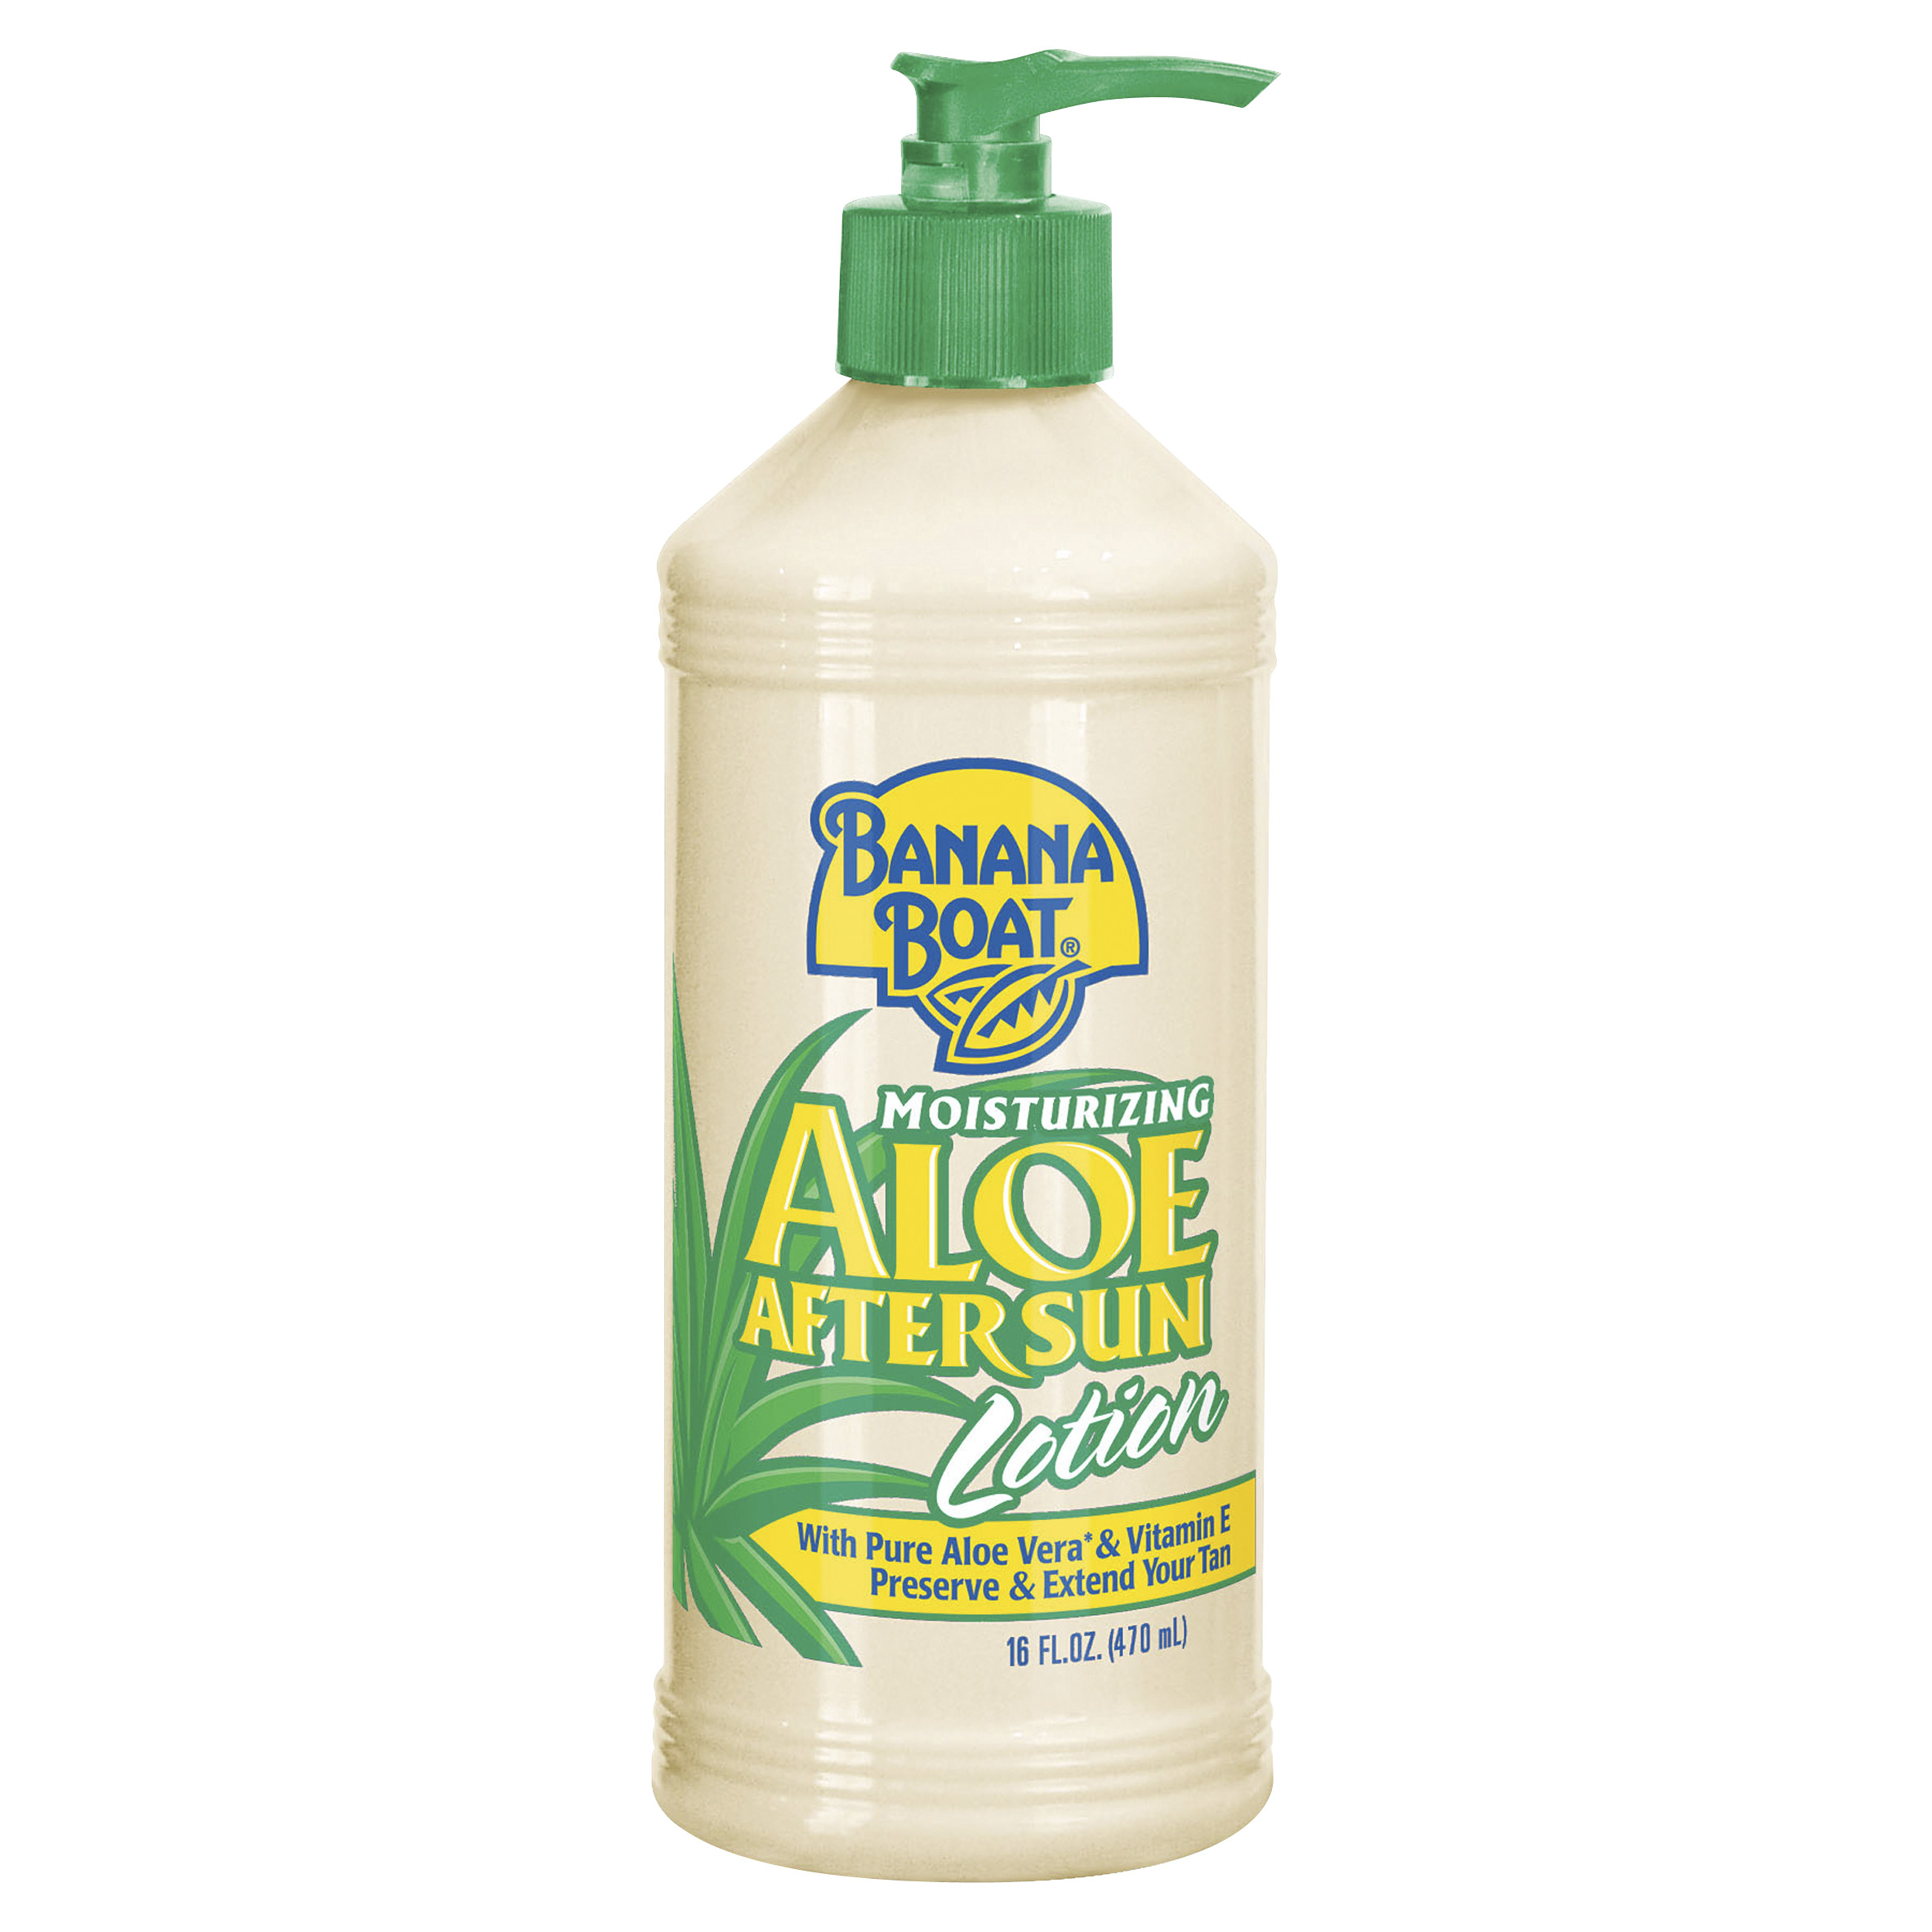 Banana Boat Moisturizing Aloe After Sun Lotion - 16 Ounces